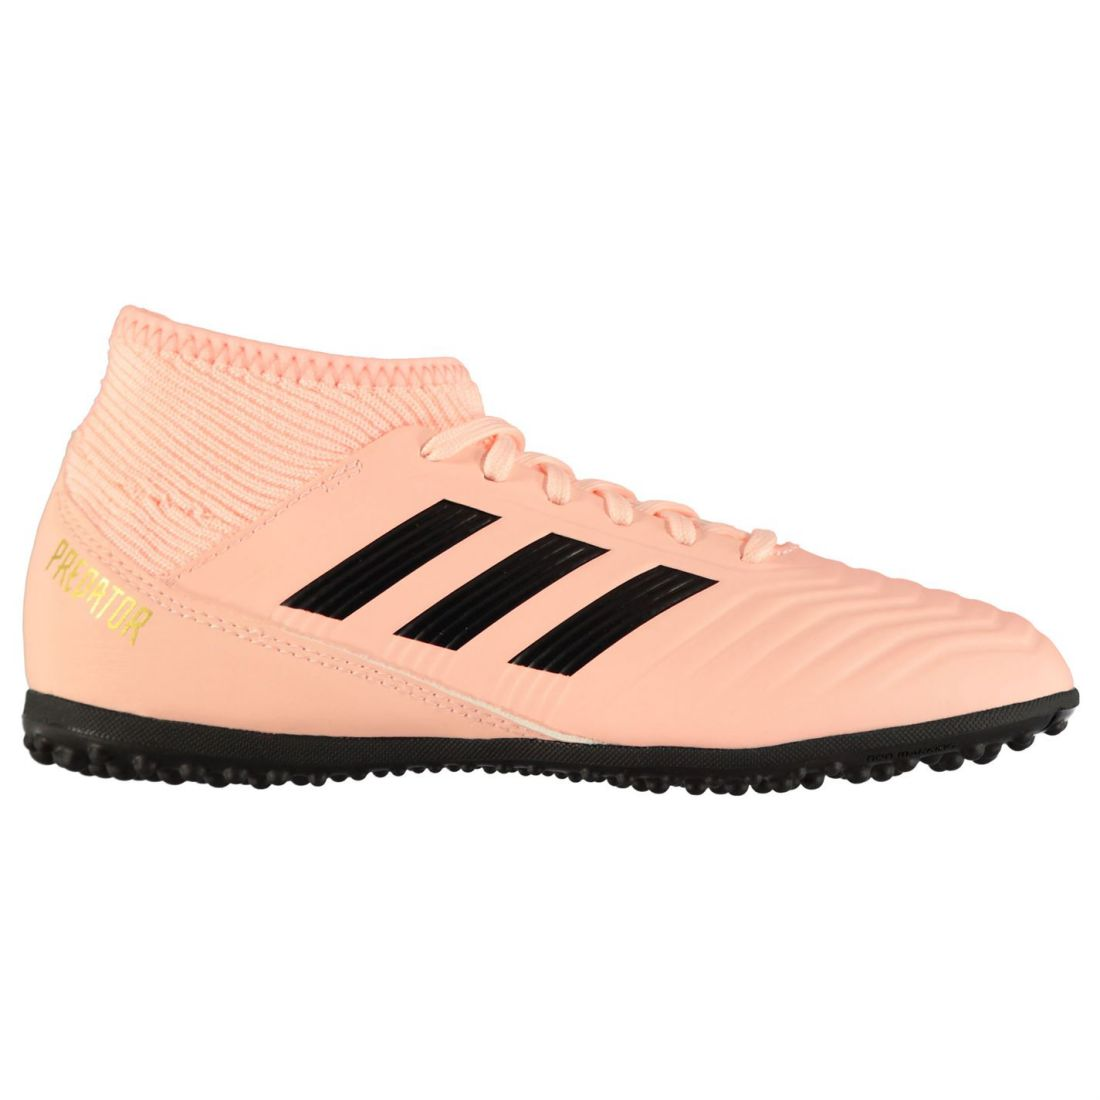 338f120a7 adidas Kids Predator Tango 18.3 Childs Astro Turf Trainers Football Boots  Lace